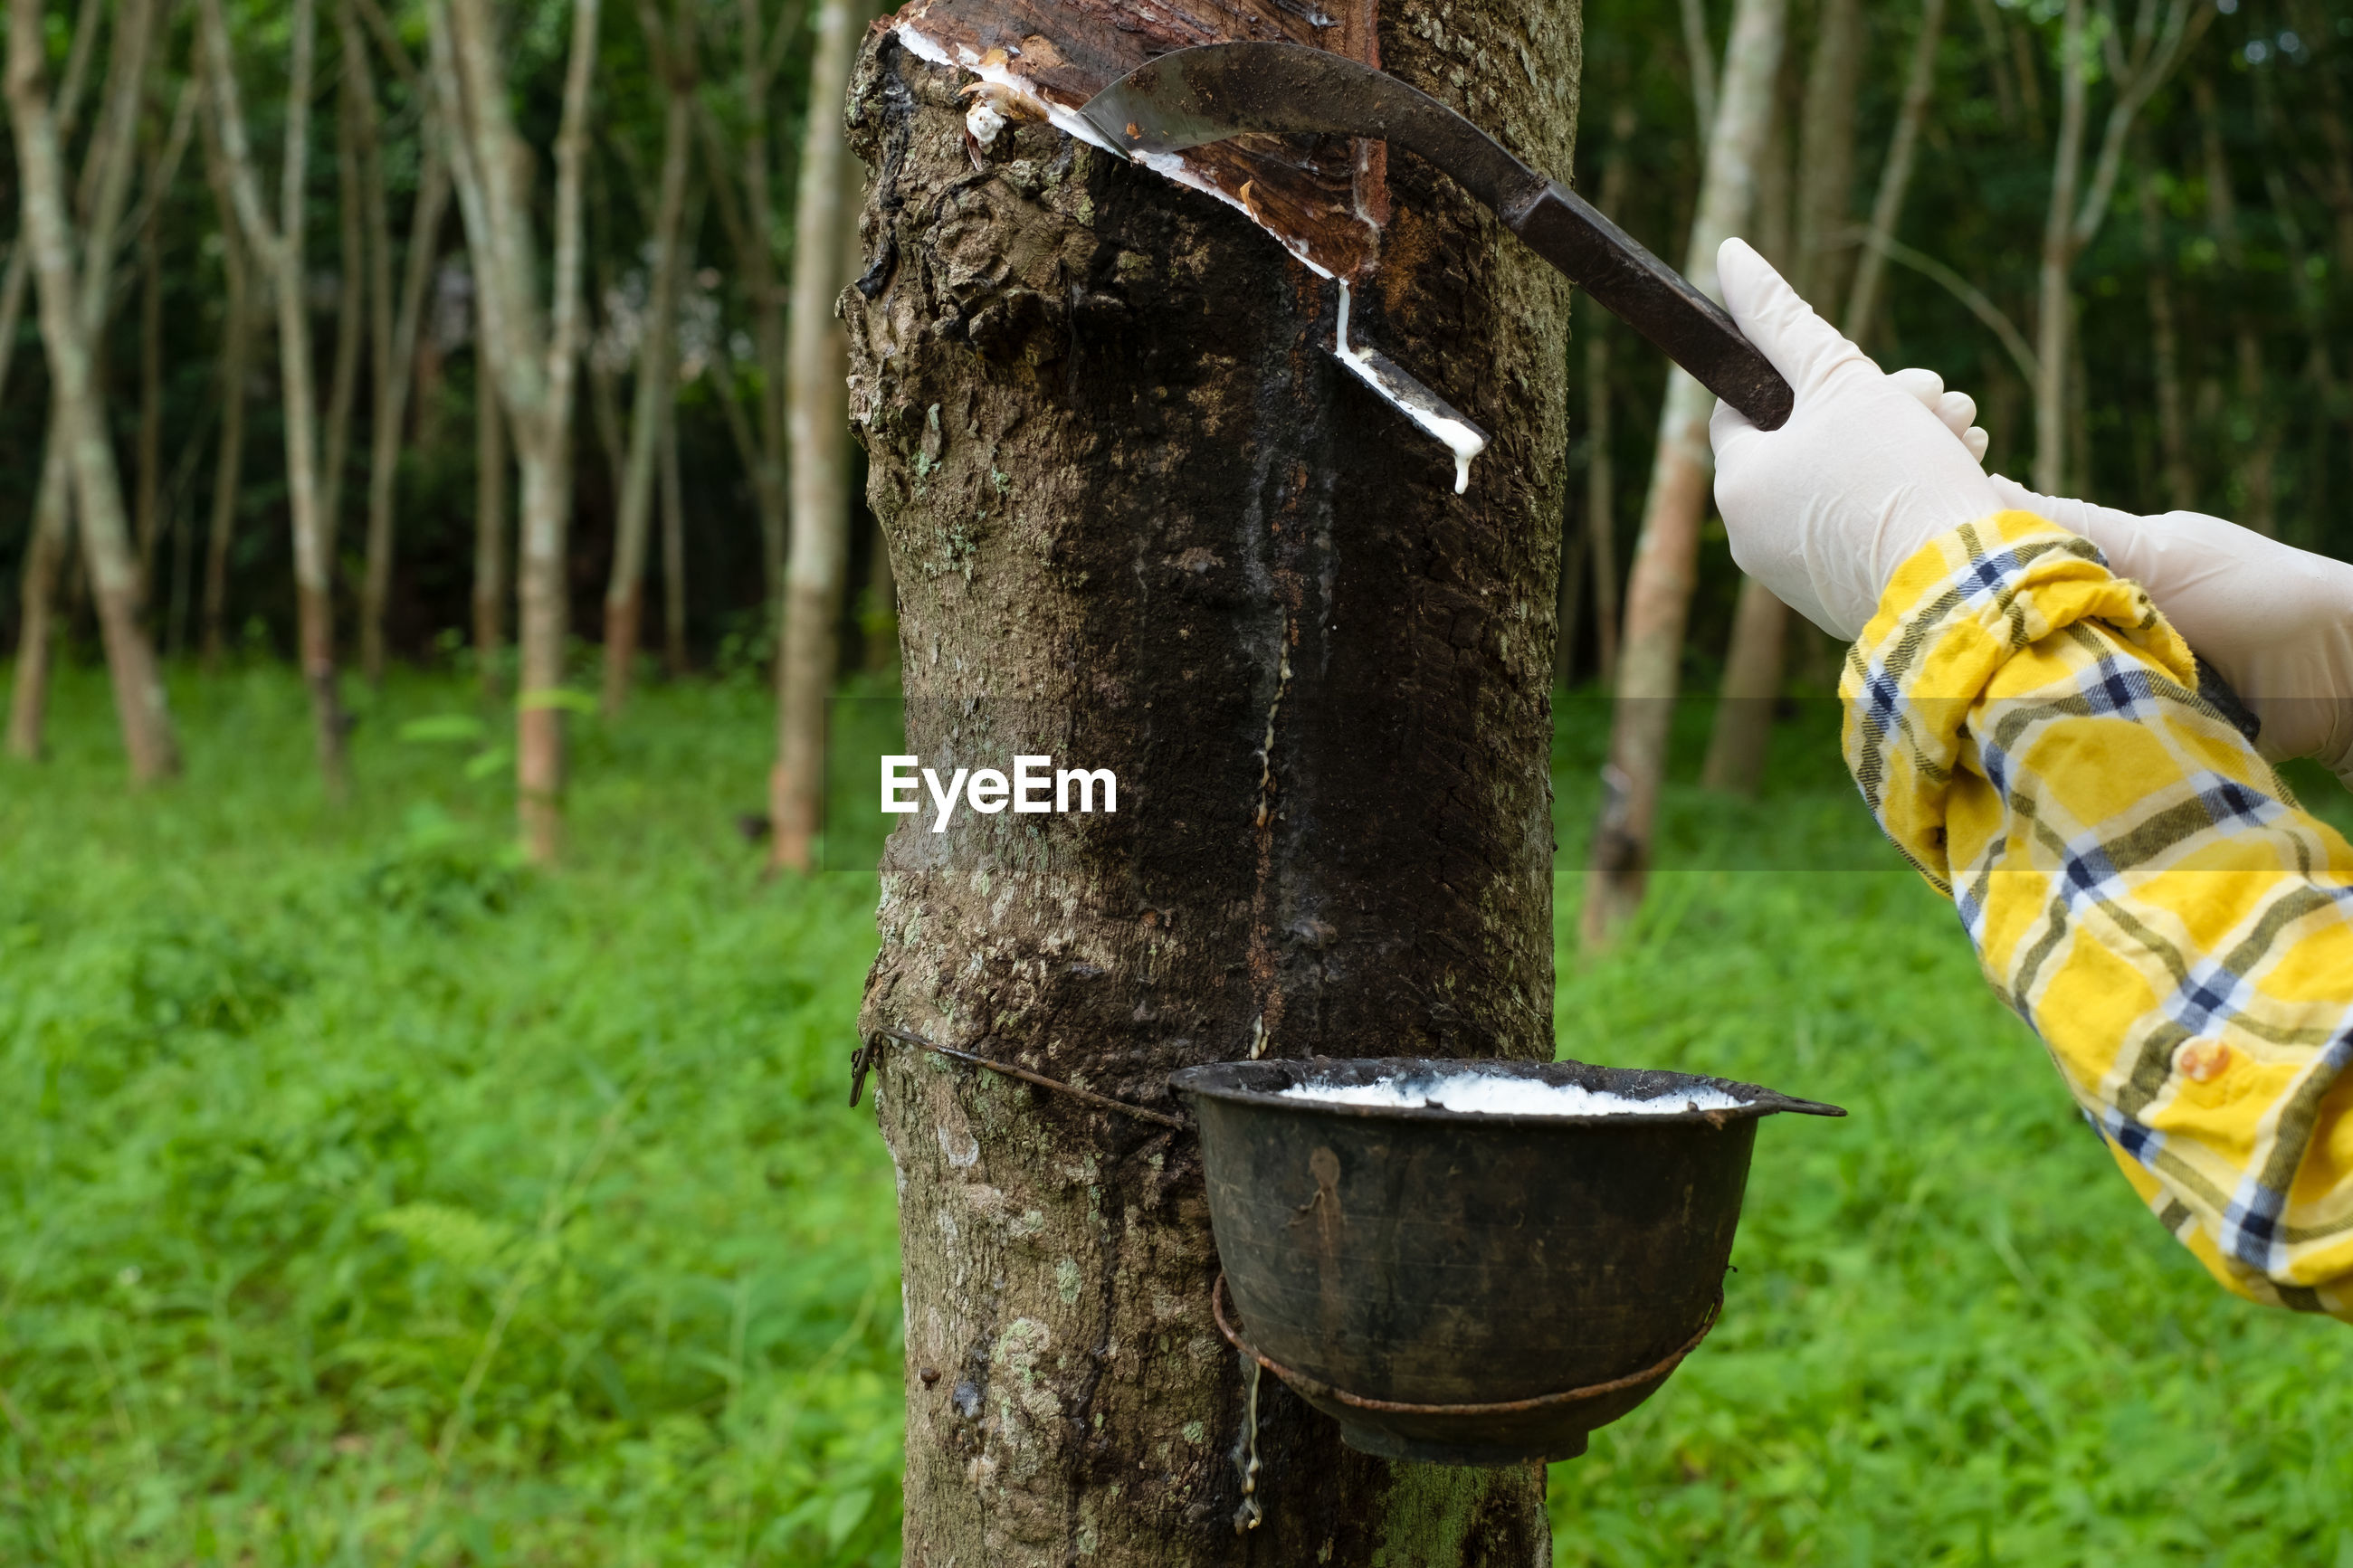 Fresh milky latex flows from para rubber tree into a plastic bowl